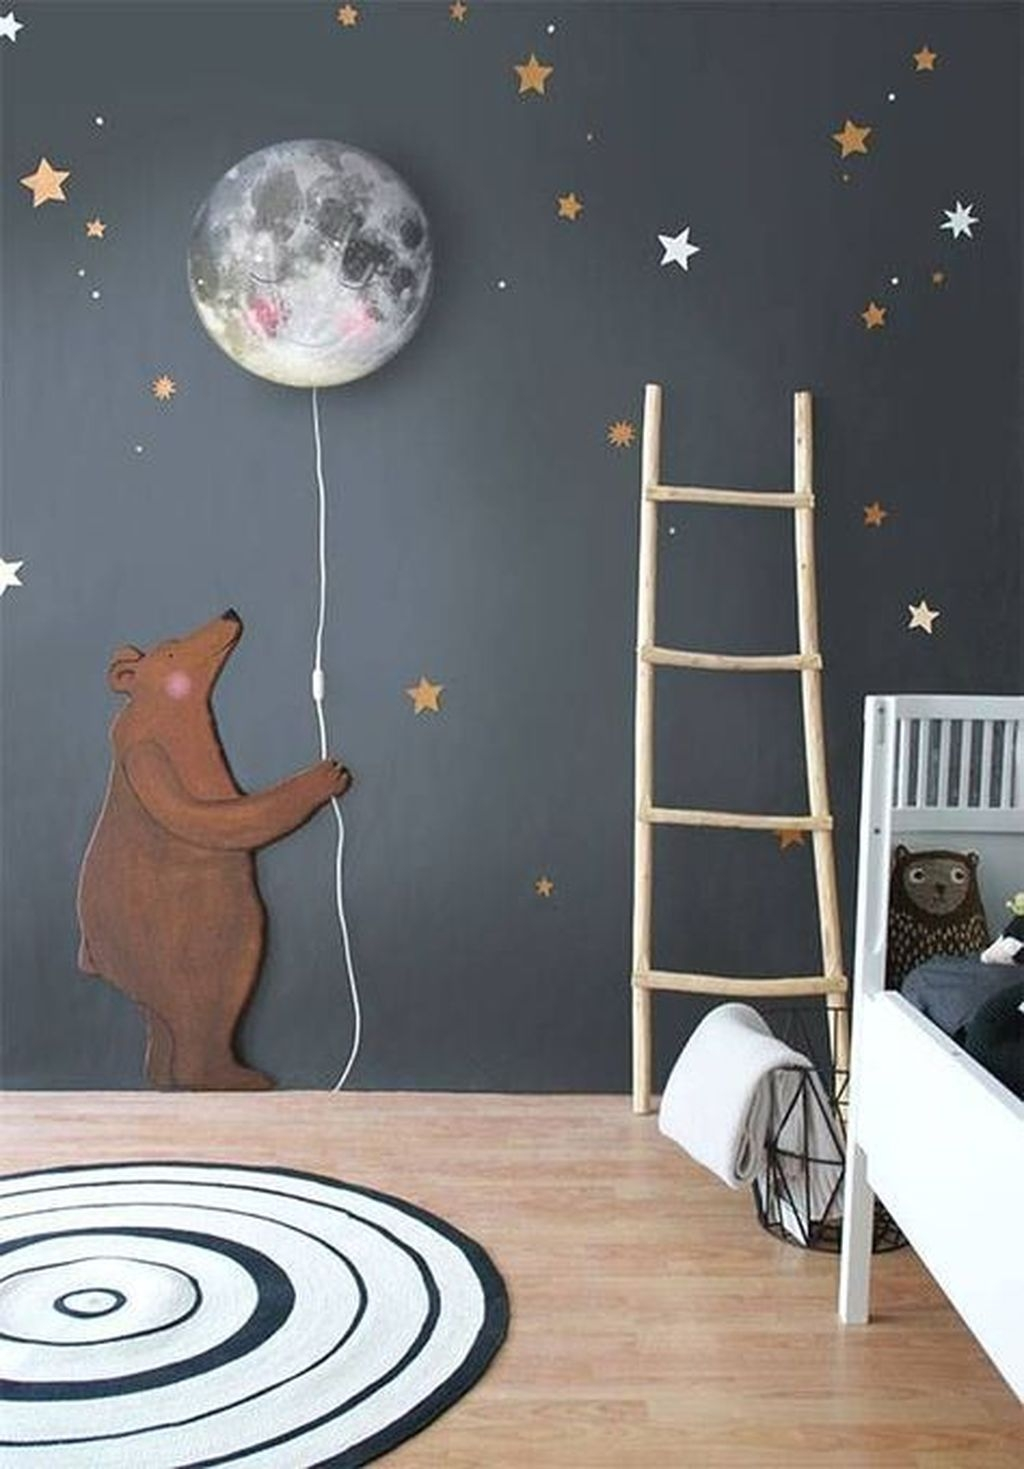 Inspiring Kids Room Design Ideas 18